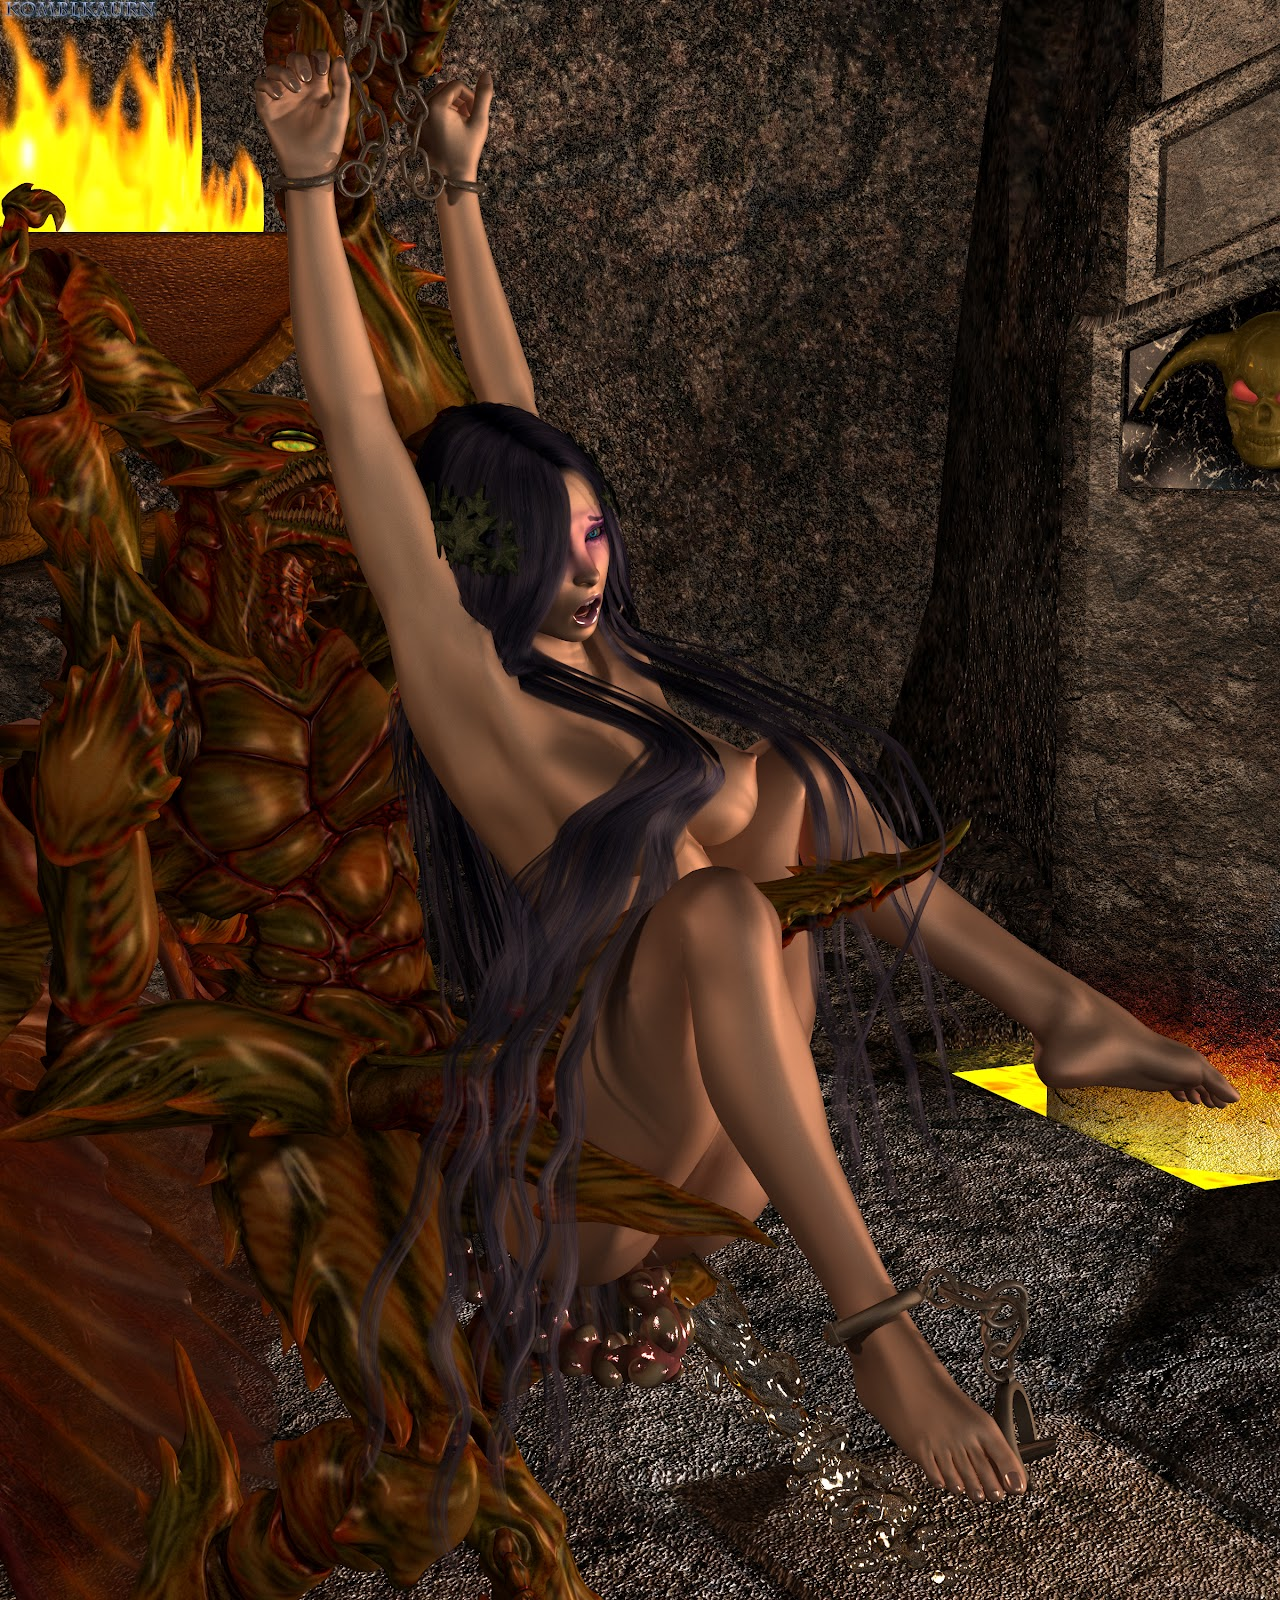 Neverwinter girls naked erotic scenes